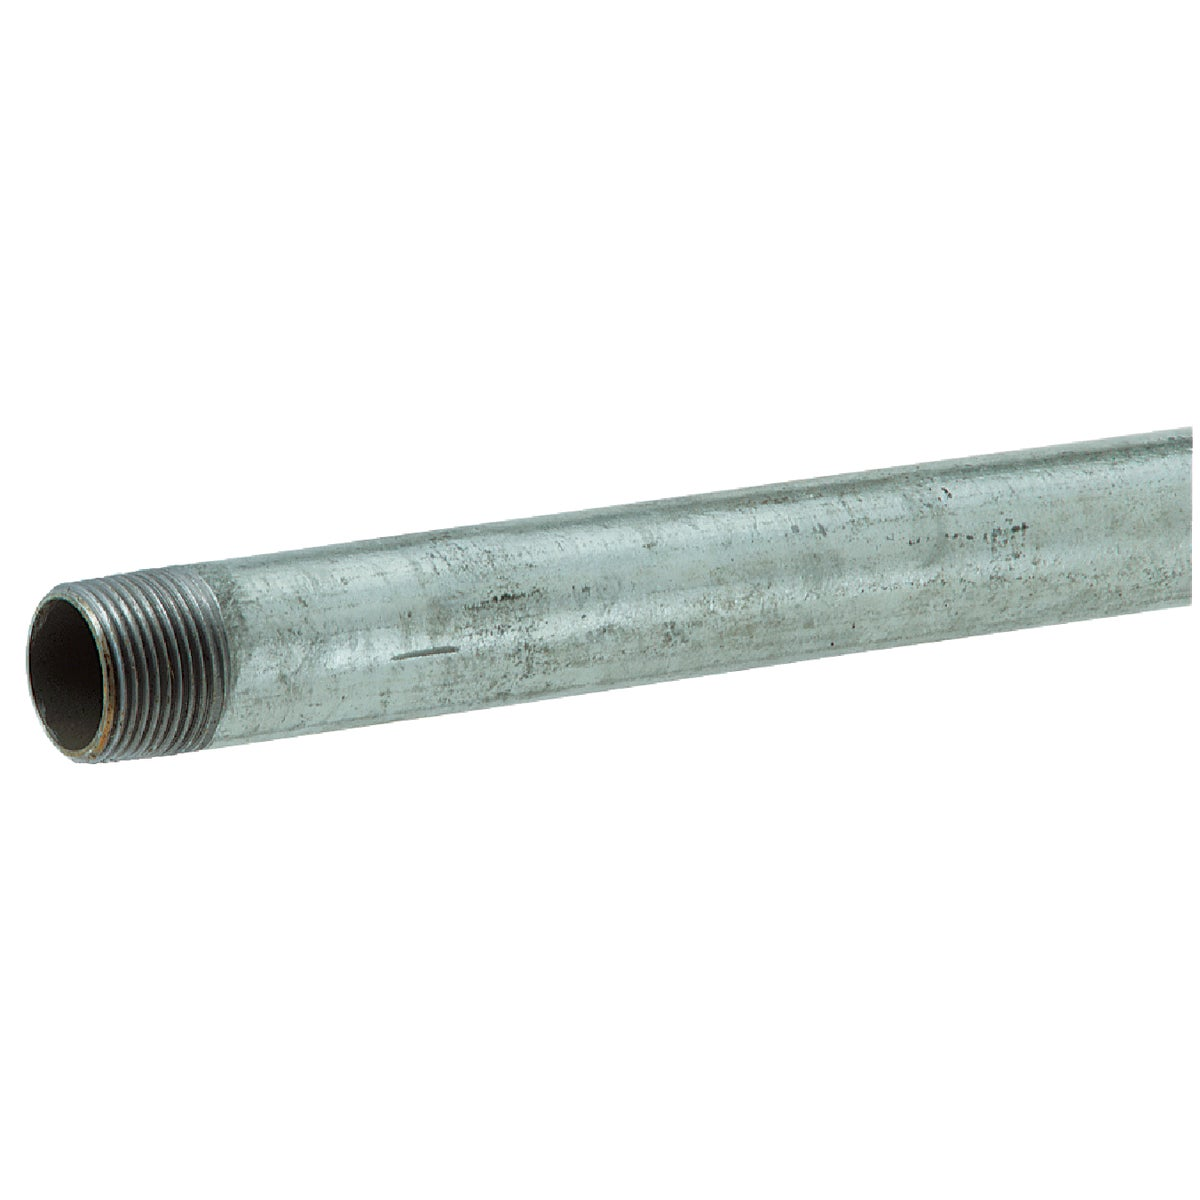 1-1/4X30GALV RDI-CT PIPE - 11/4X30 by Southland Pipe Nippl